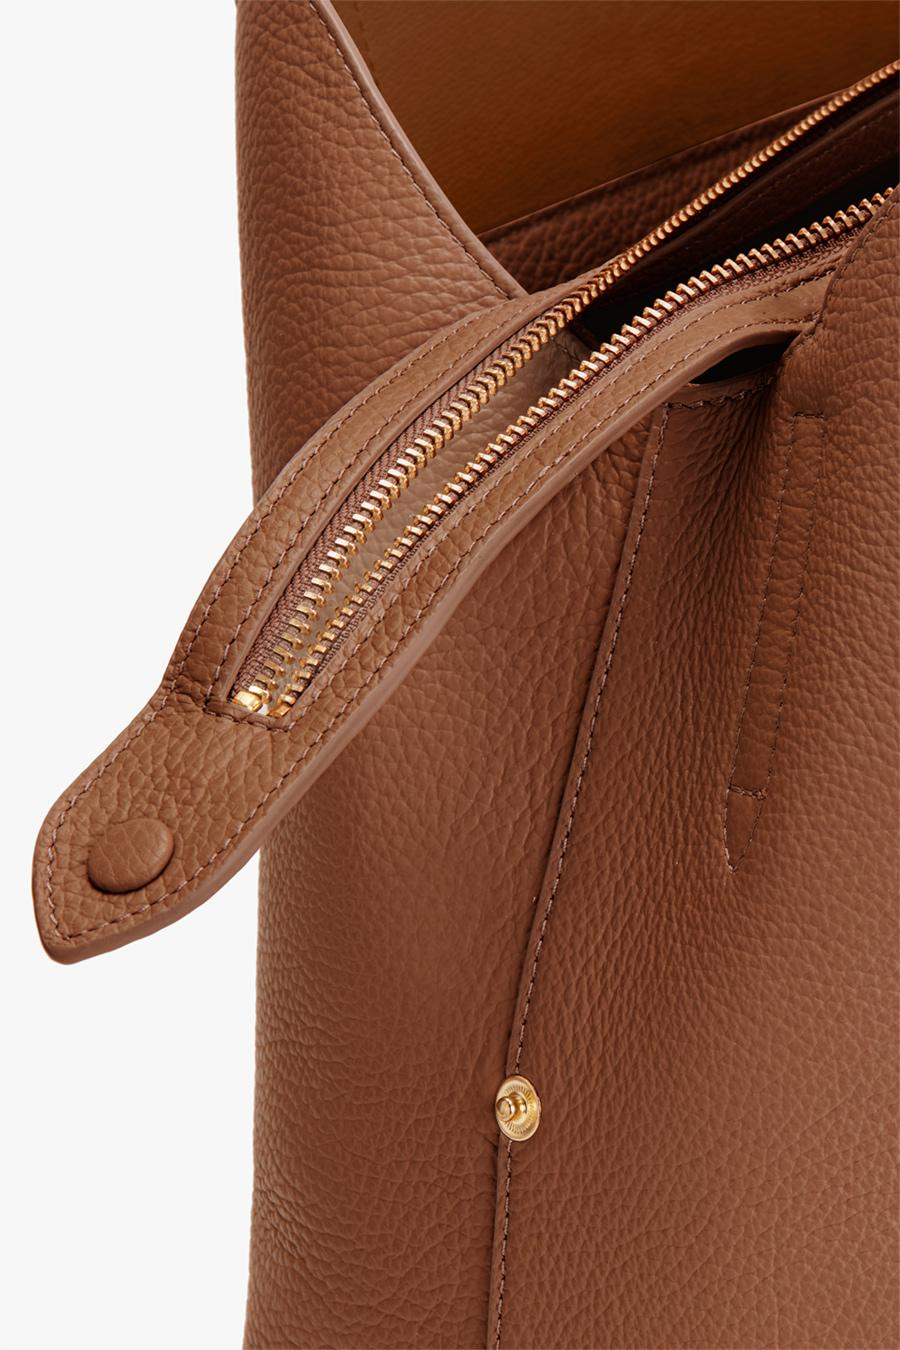 Women's Zippered Satchel Bag in Caramel | Pebbled Leather by Cuyana 2